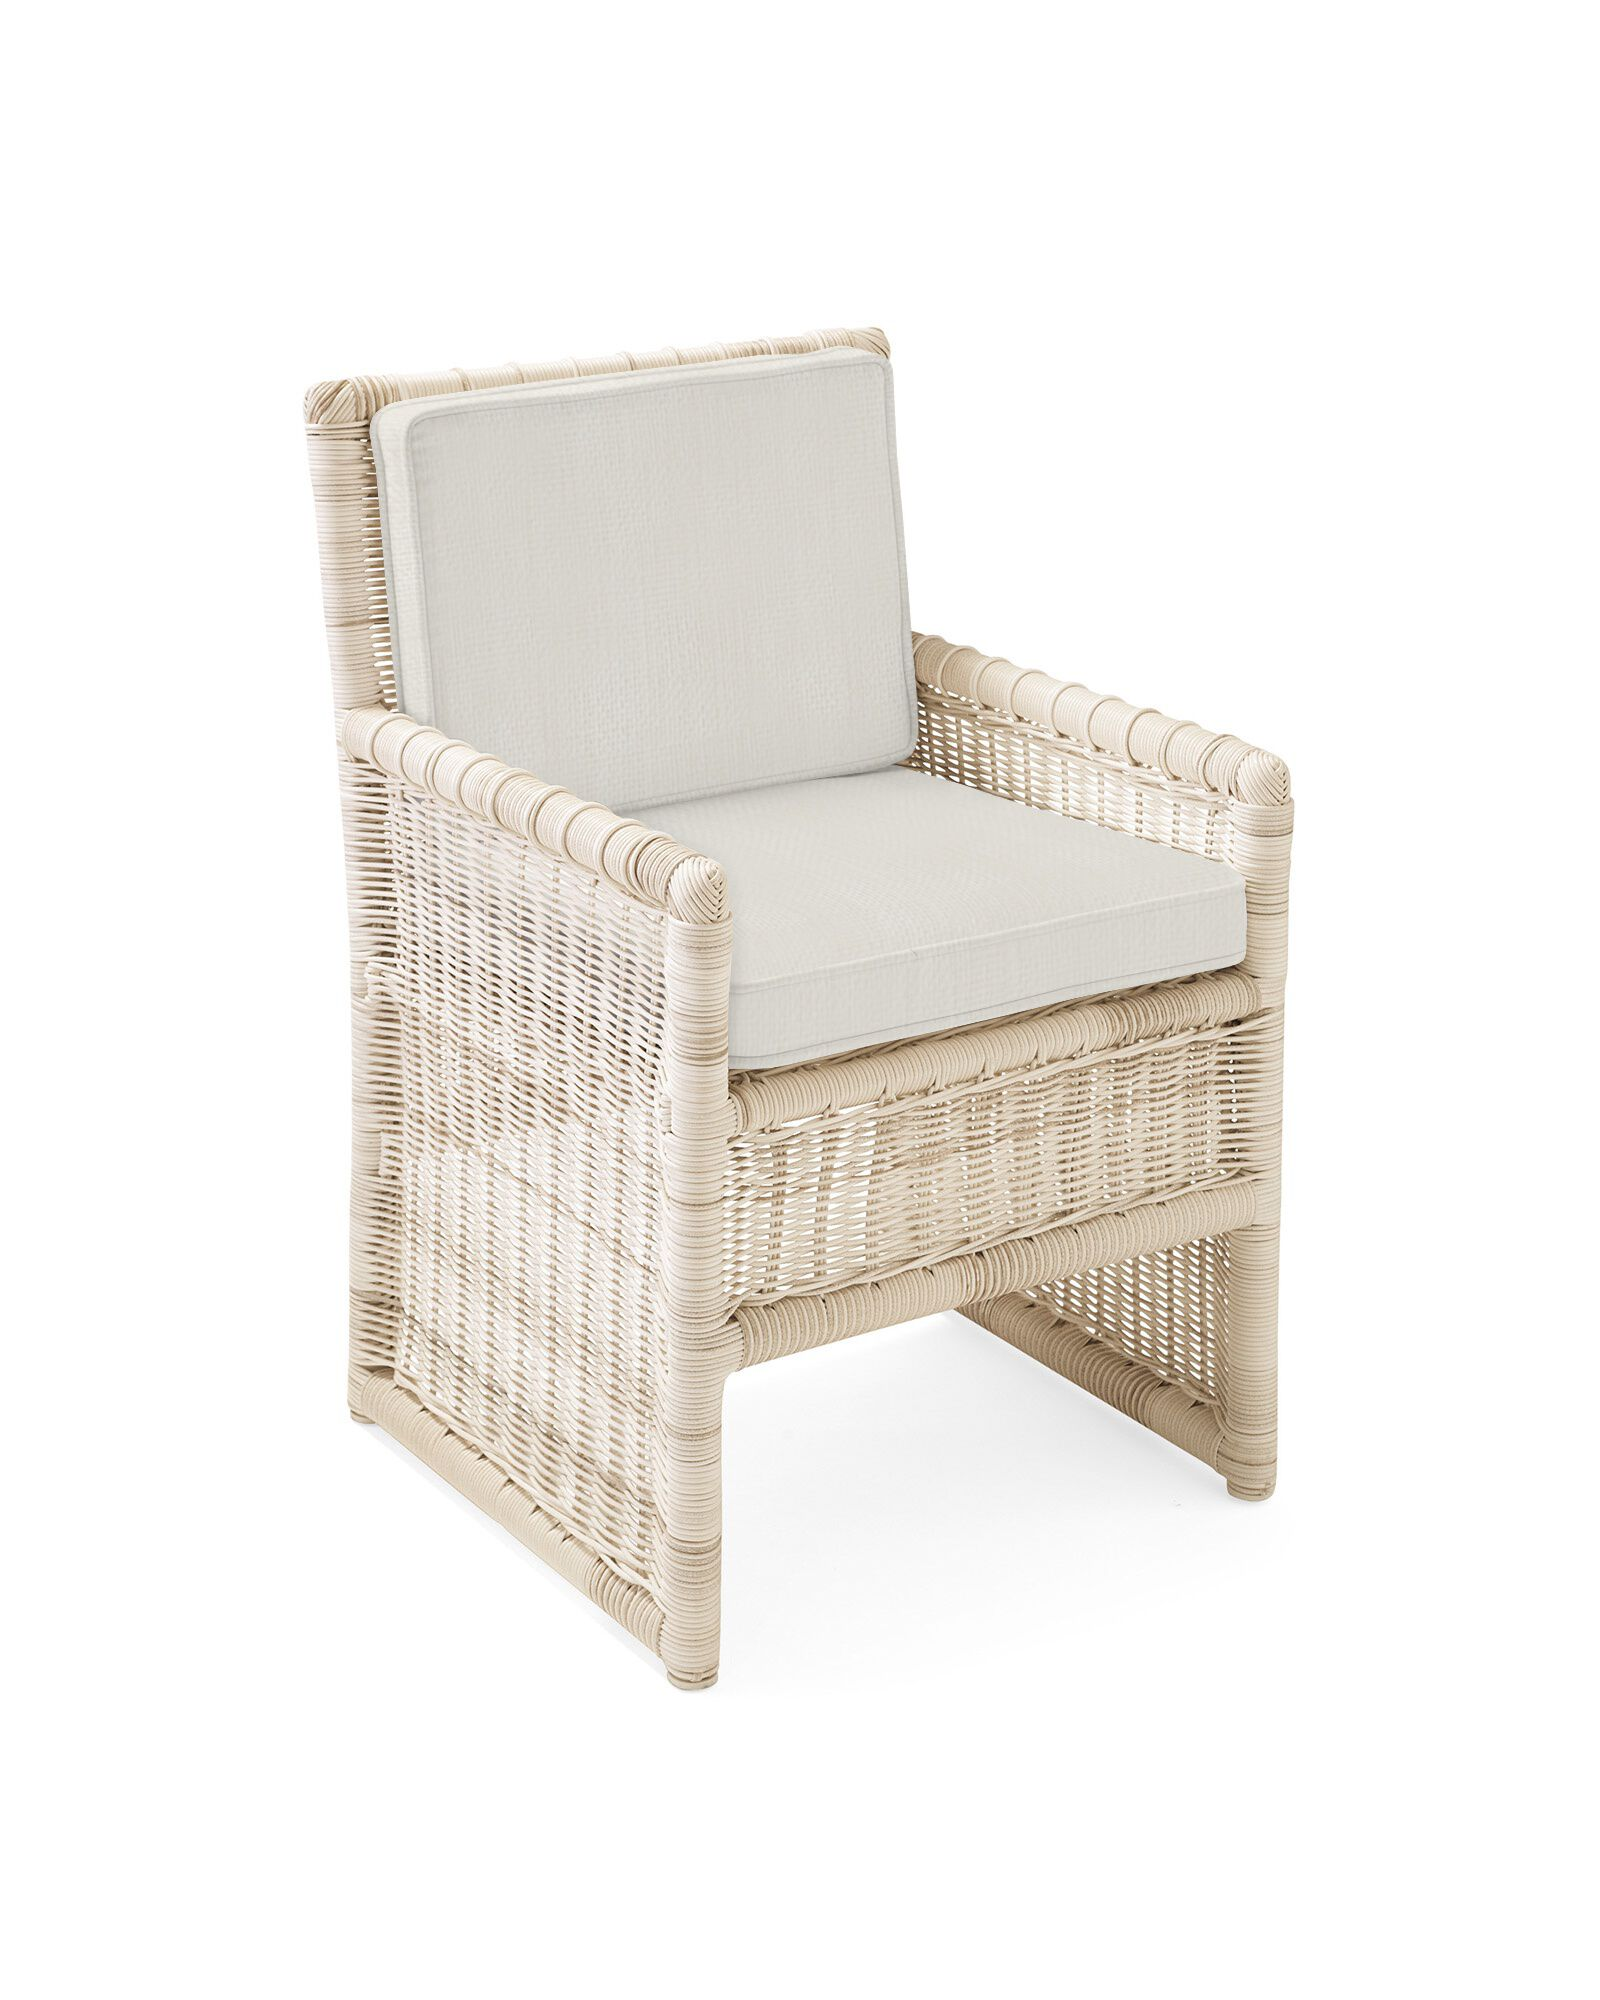 Cushion Cover for Pacifica Dining Chair, Perennials Basketweave Chalk